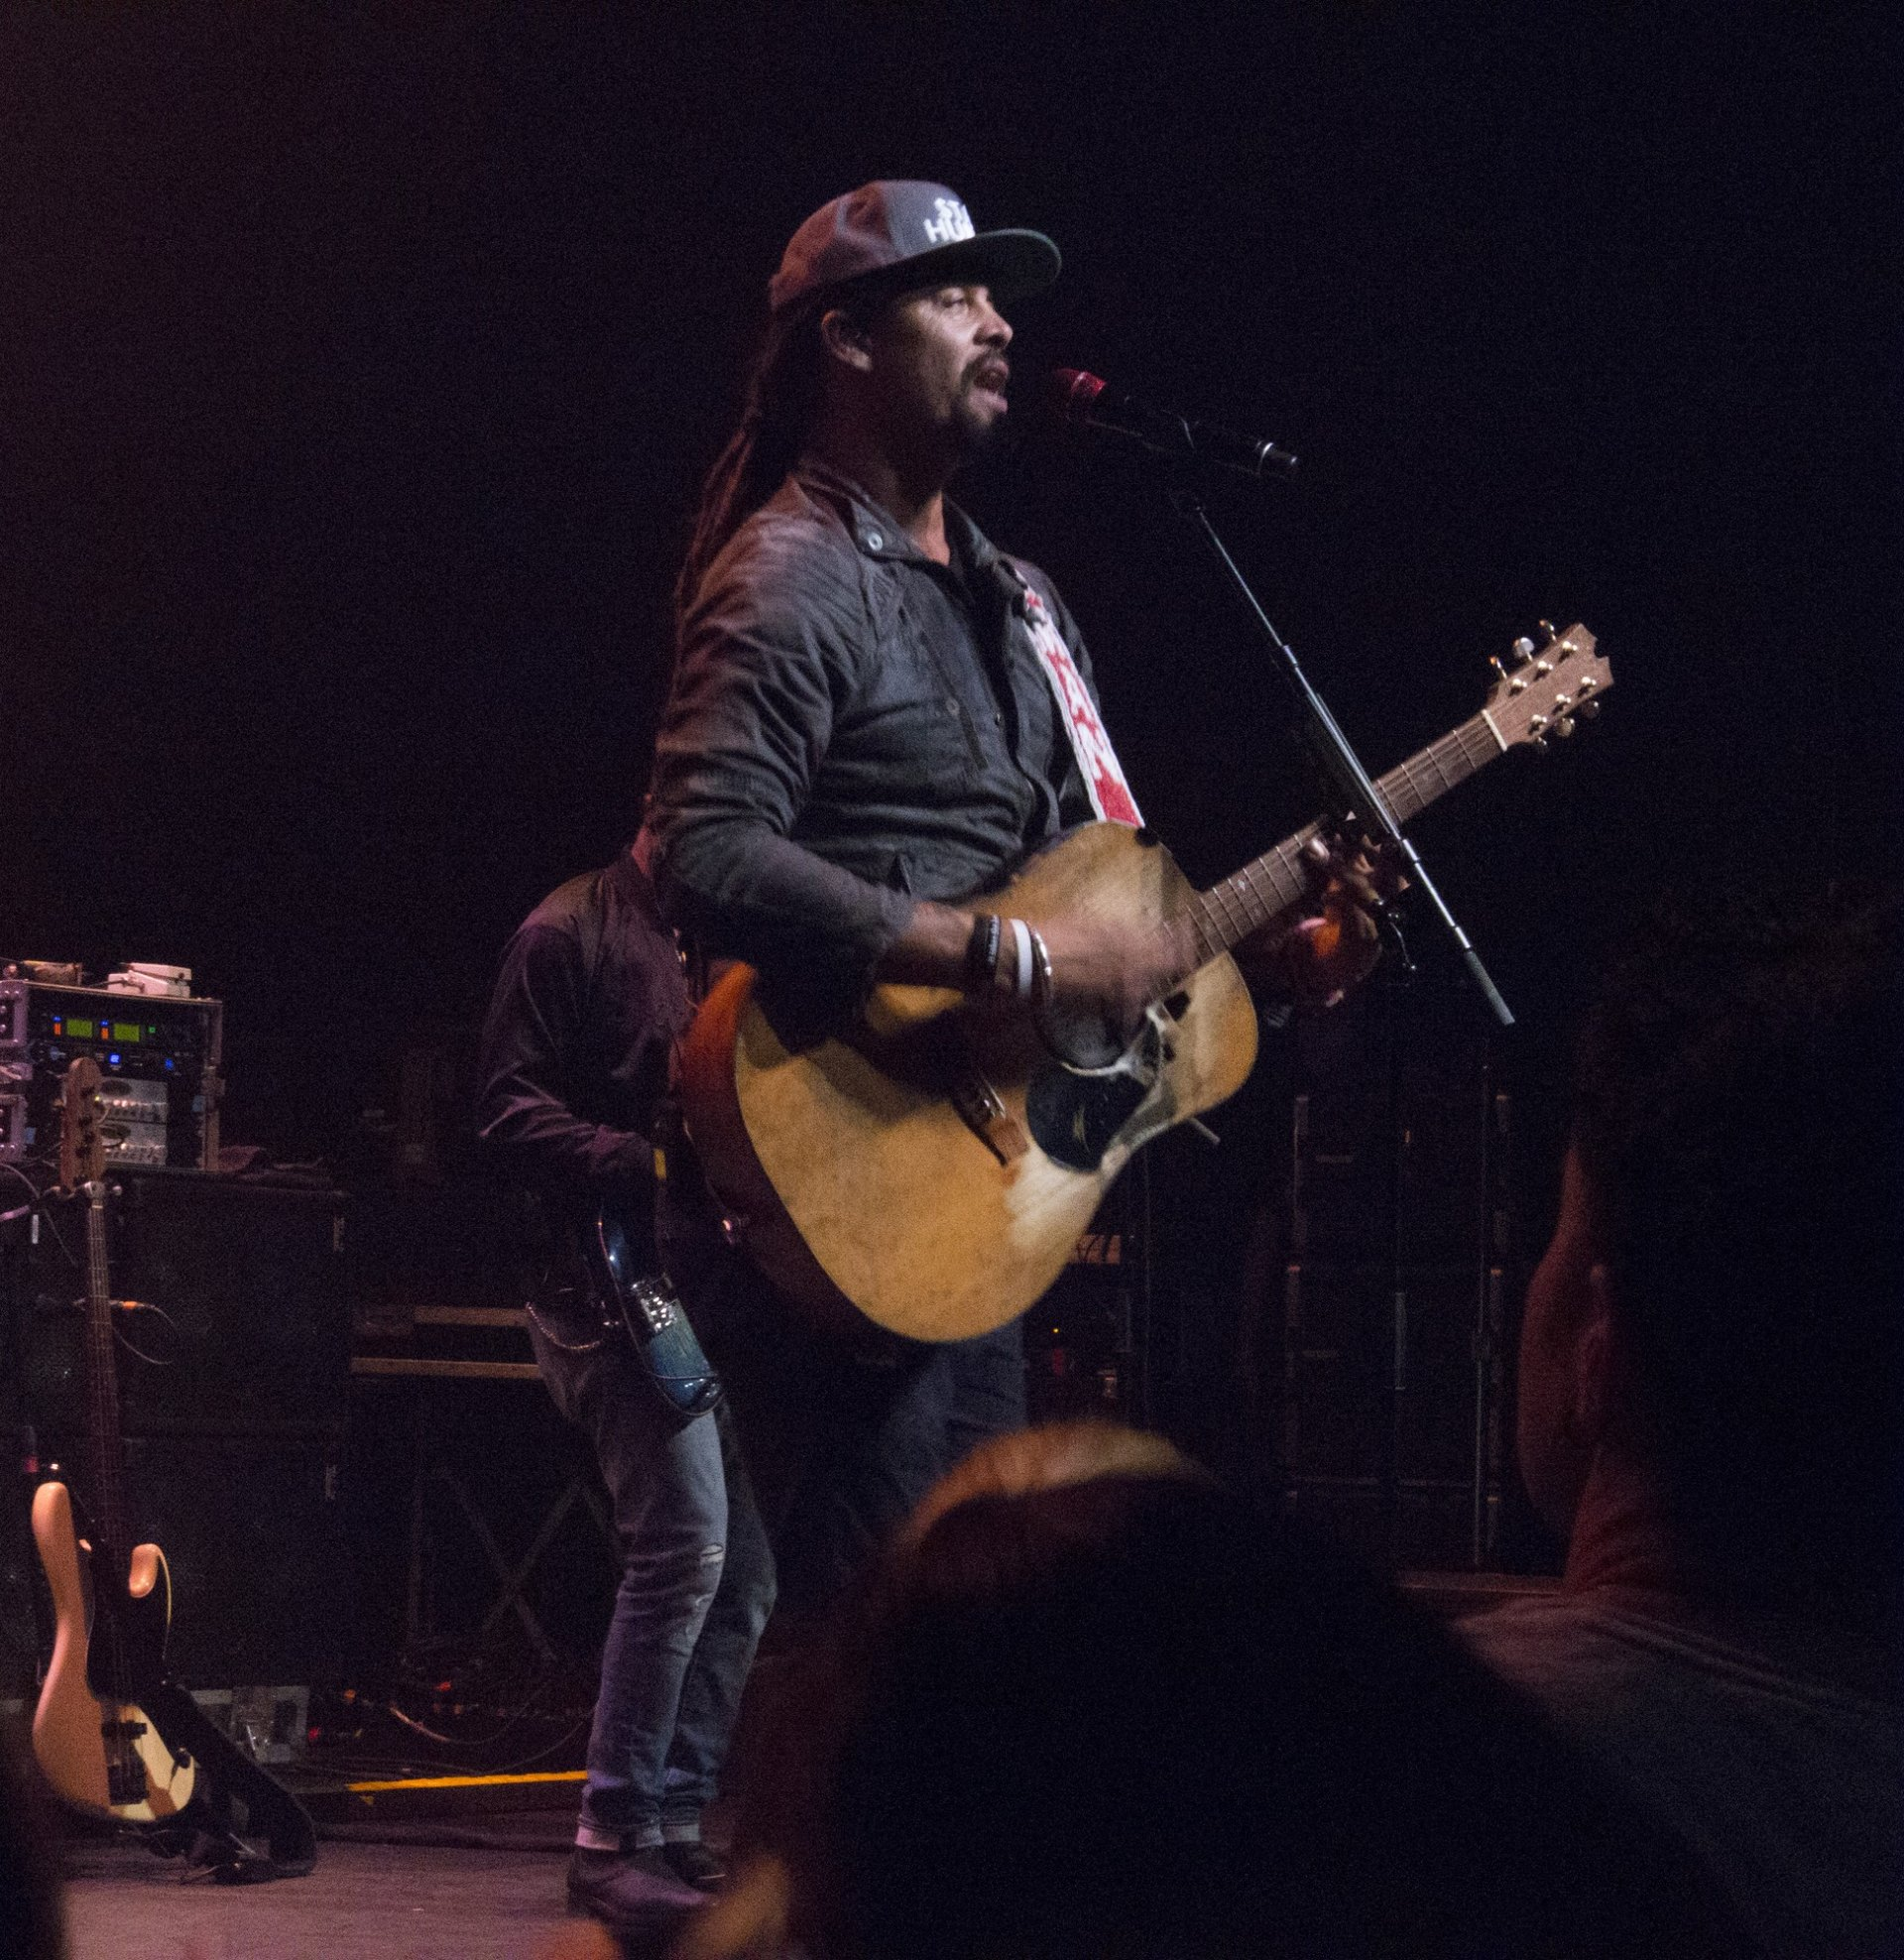 Michael Franti and Spearhead performing in the Vanduzer Theatre at Humbodt State University Sunday September 17, 2017 Photo credit: Robert Brown